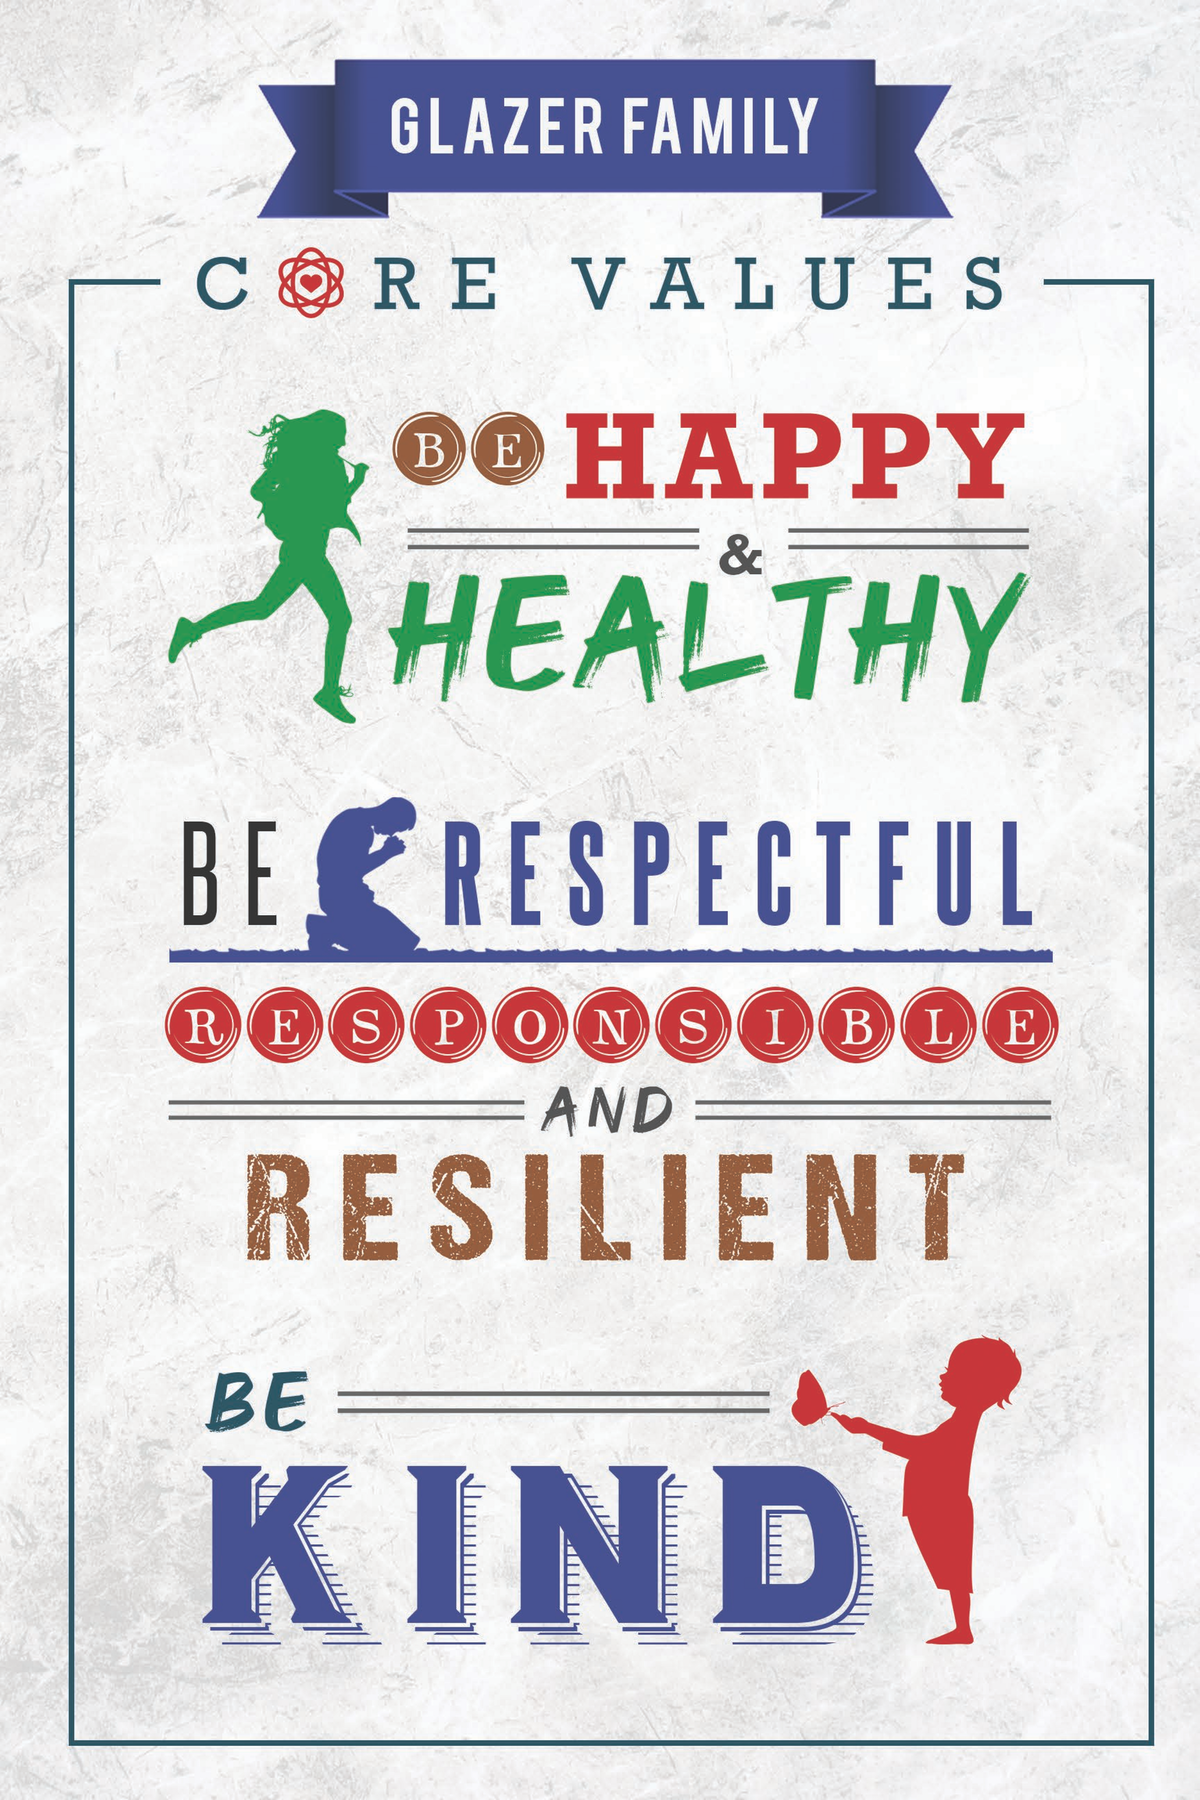 Core Values poster